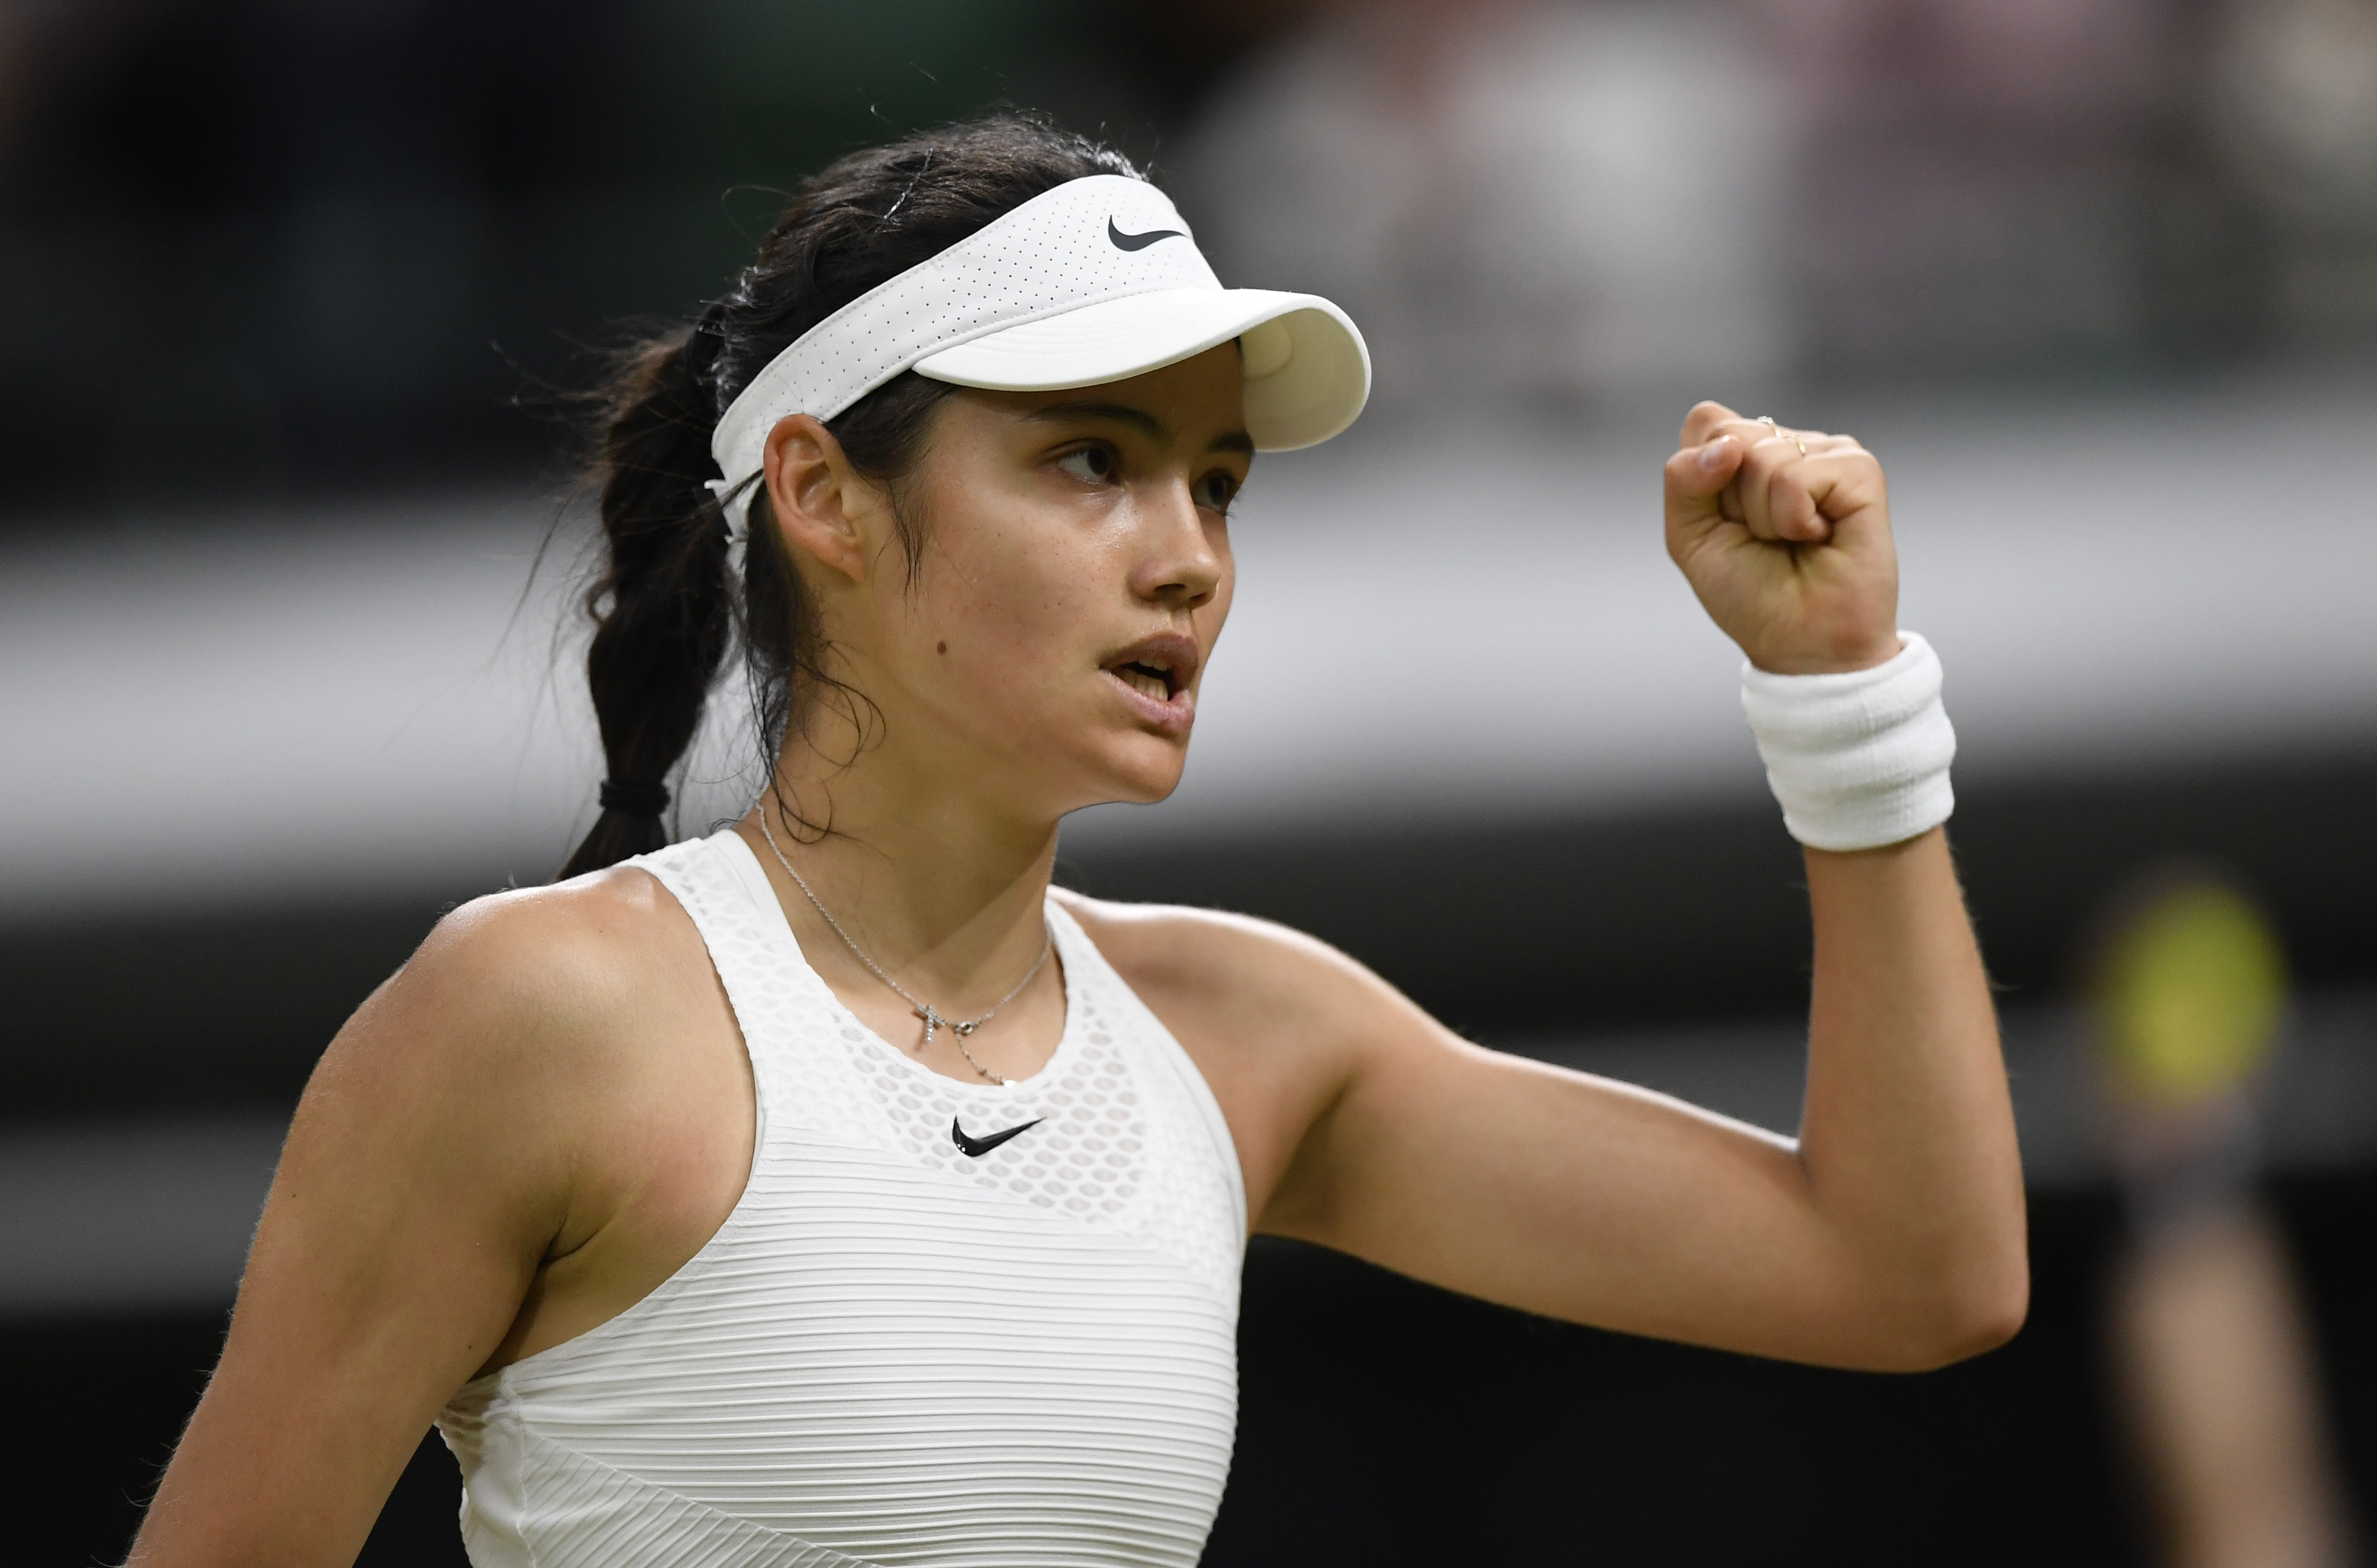 Tennis - Wimbledon - All England Lawn Tennis and Croquet Club, London, Britain - July 5, 2021 Britain's Emma Raducanu reacts during her fourth round match against Australia's Ajla Tomljanovic REUTERS/Toby Melville